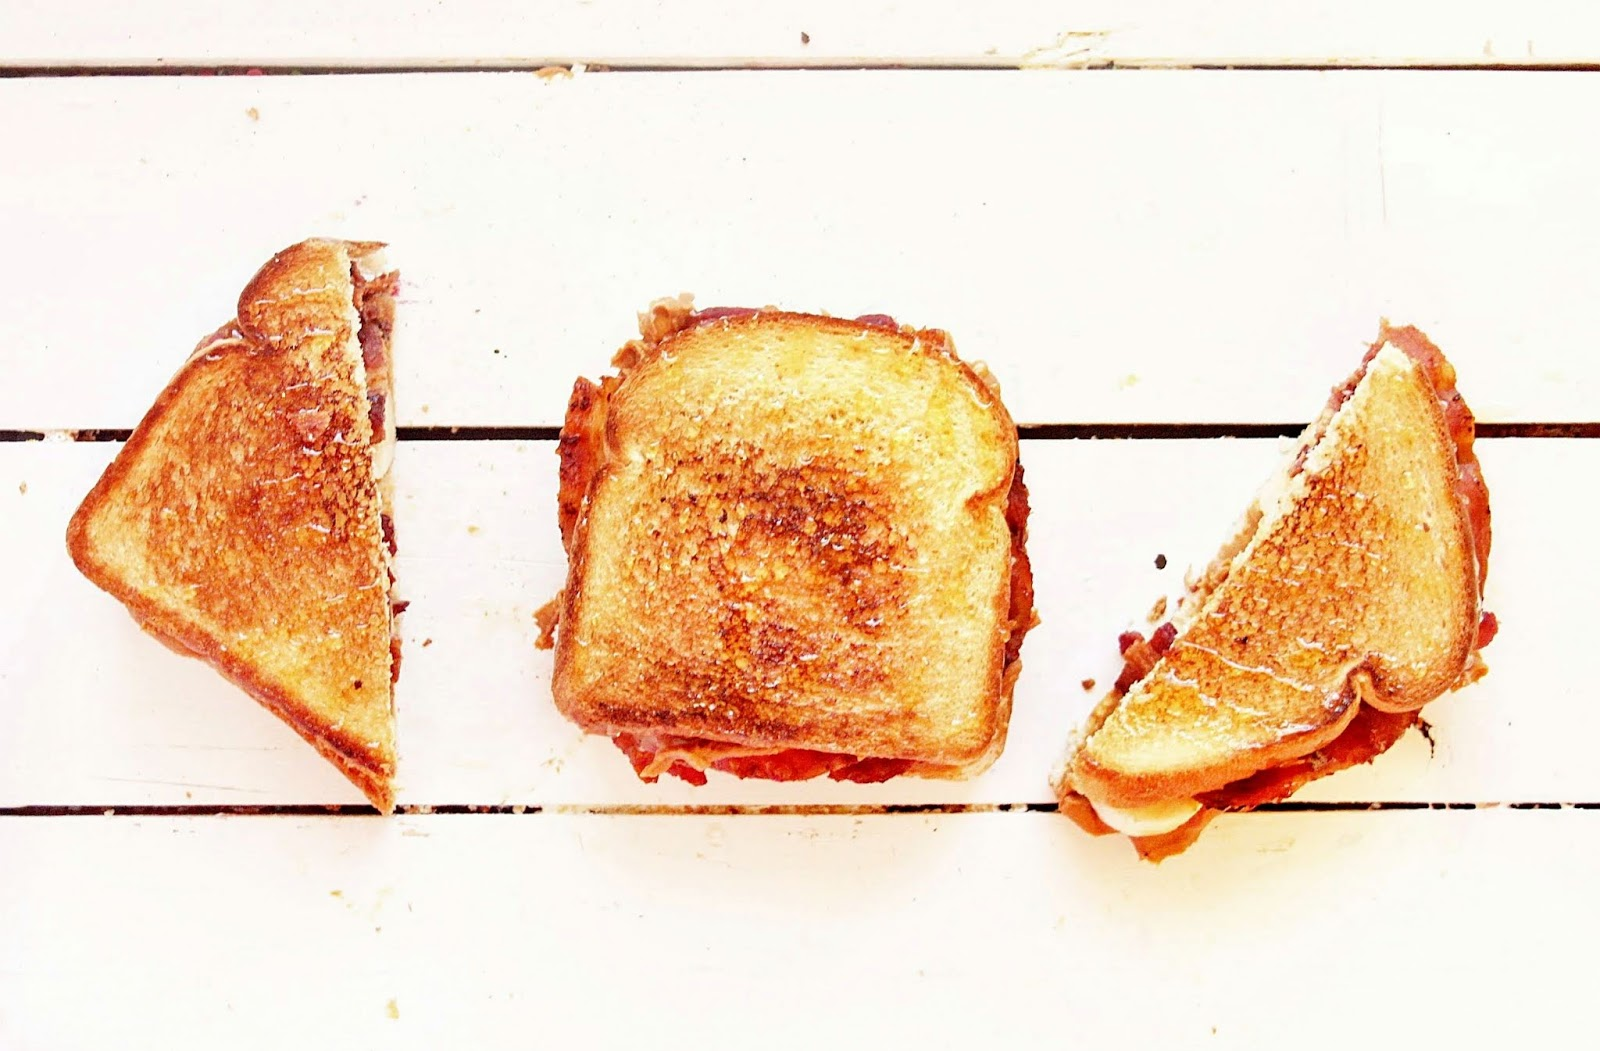 Bacon, peanut butter and banana make this sandwich oh-so-yummy!